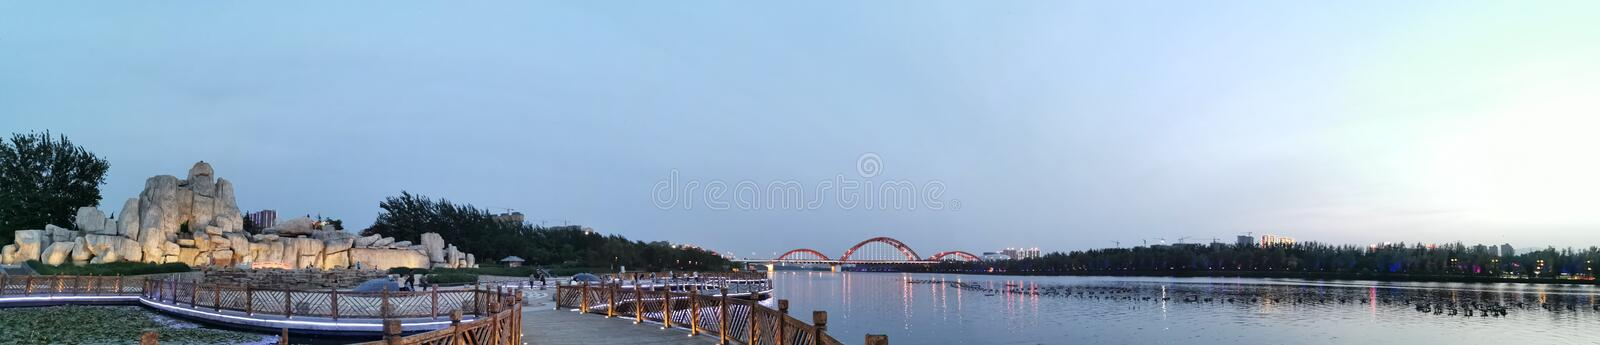 The rainbow bridge in the distance, the woods, the rockery in the distance, the lake royalty free stock images